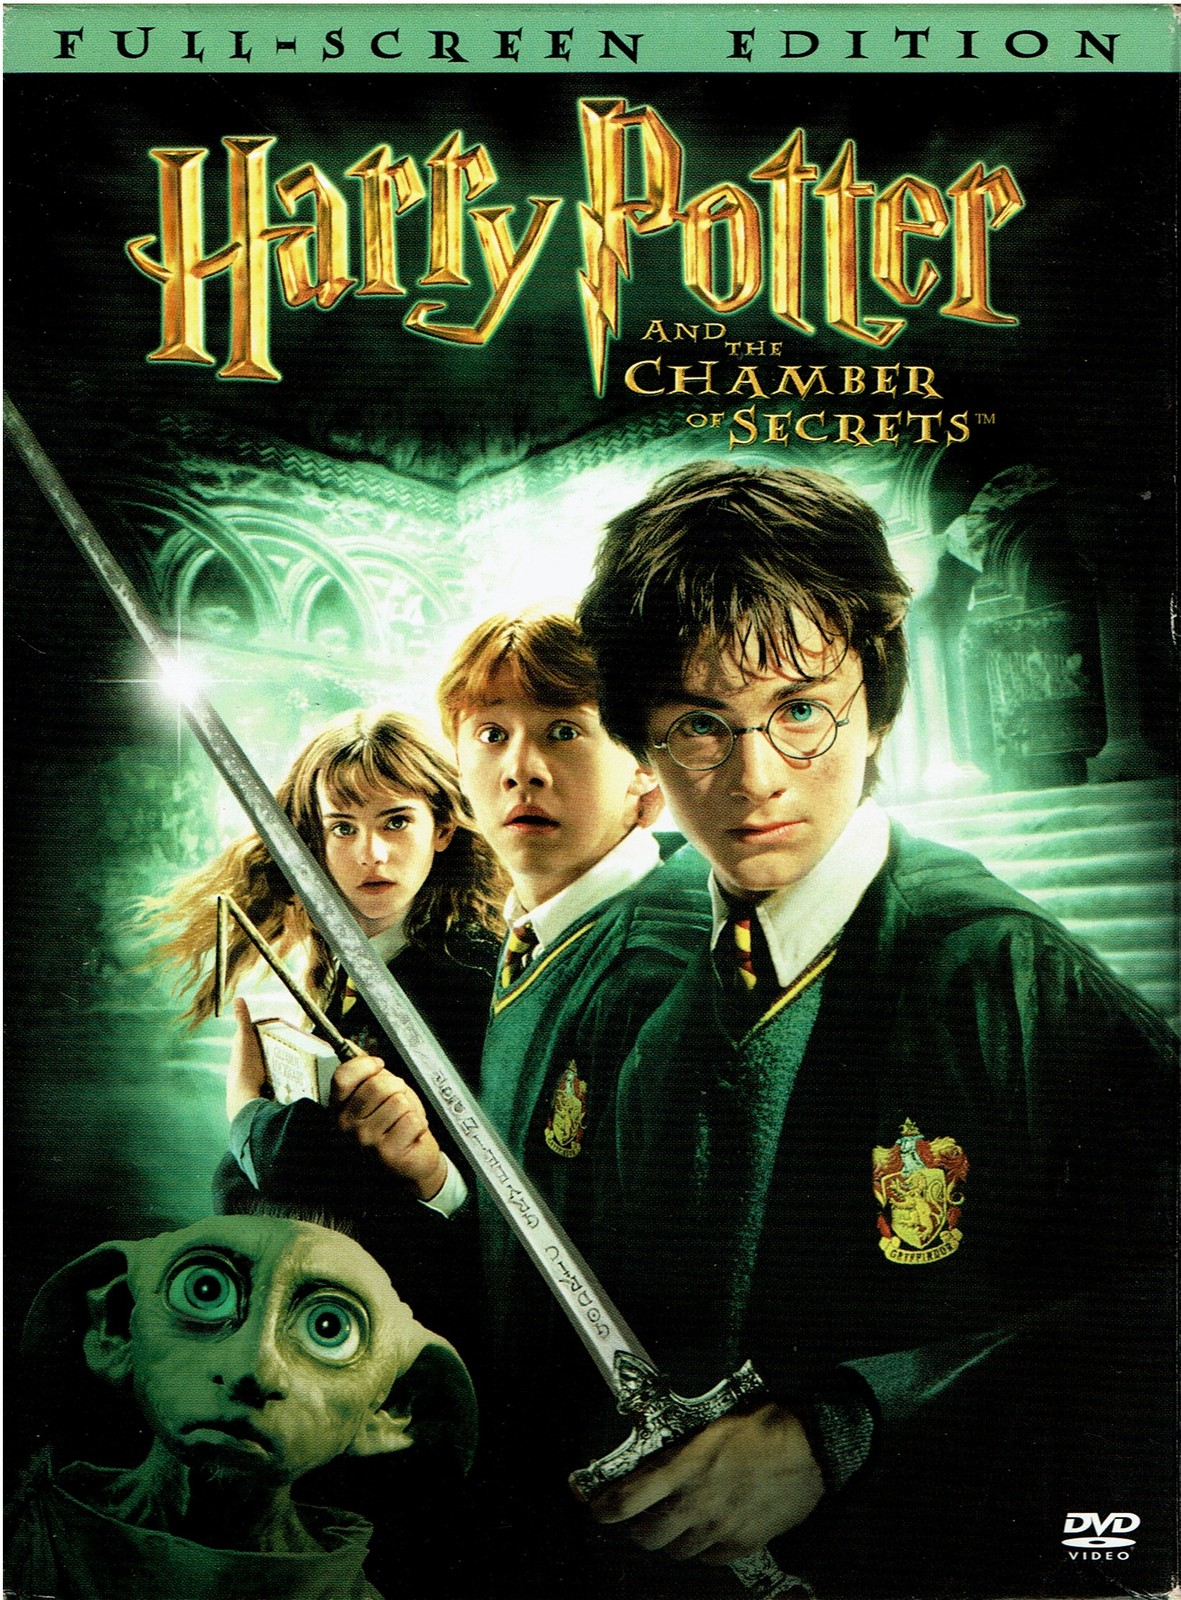 Harry Potter and the Chamber of Secrets, DVD, 2003, Full-Screen Edition